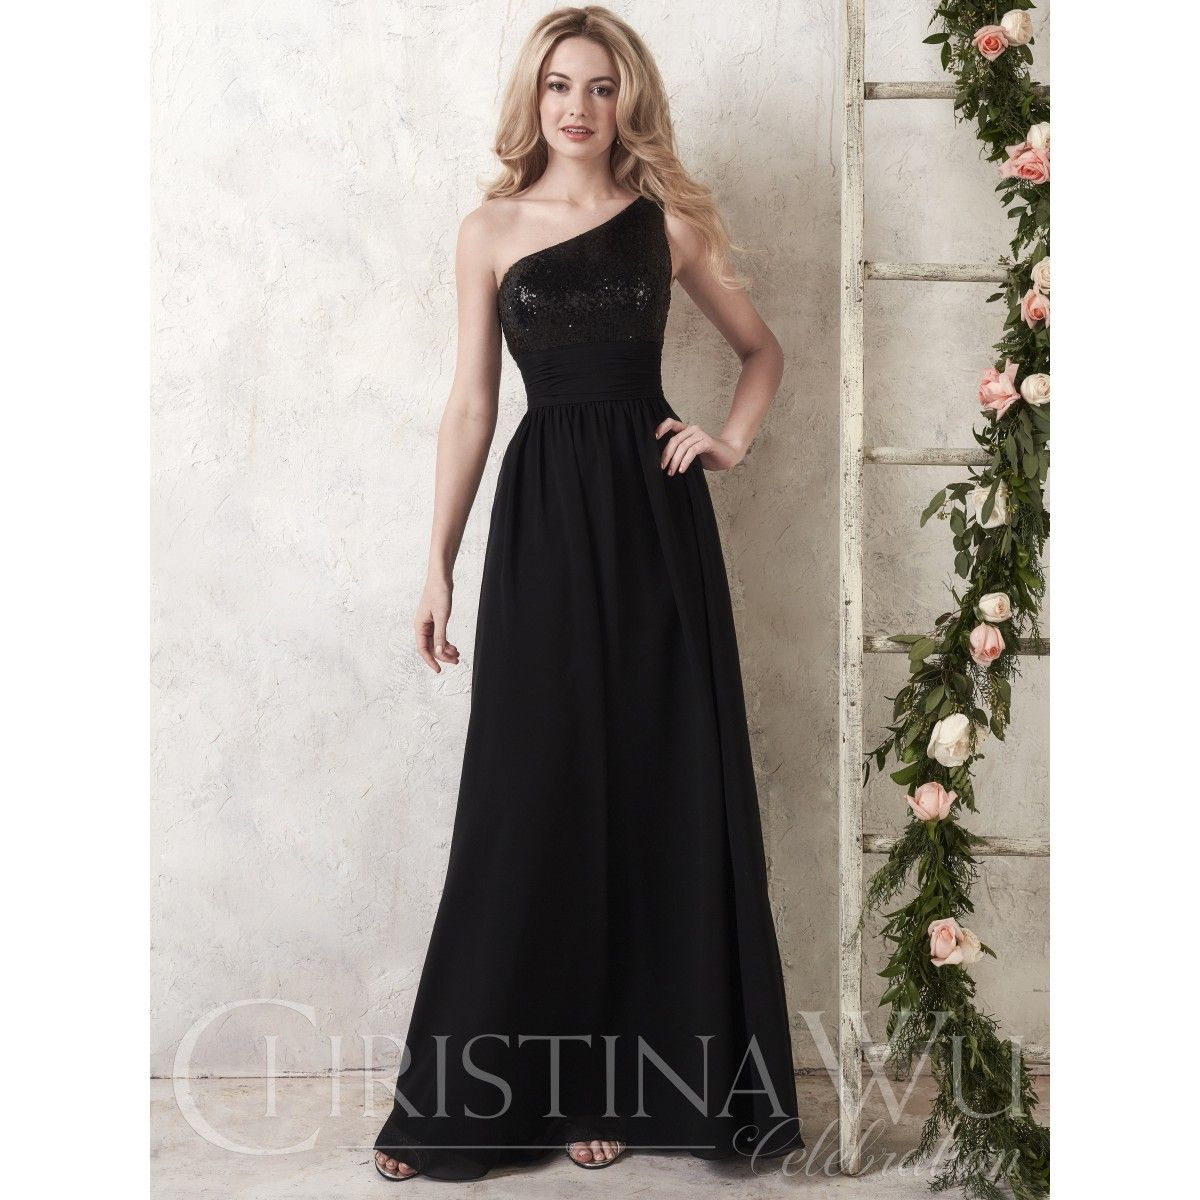 Christina wu style 22747 shown in bronze size 16 christina wu celebration 22747 is a one shoulder bridesmaid gown that has a fully sequined bodice with pleated middle and a long chiffon skirt ombrellifo Gallery